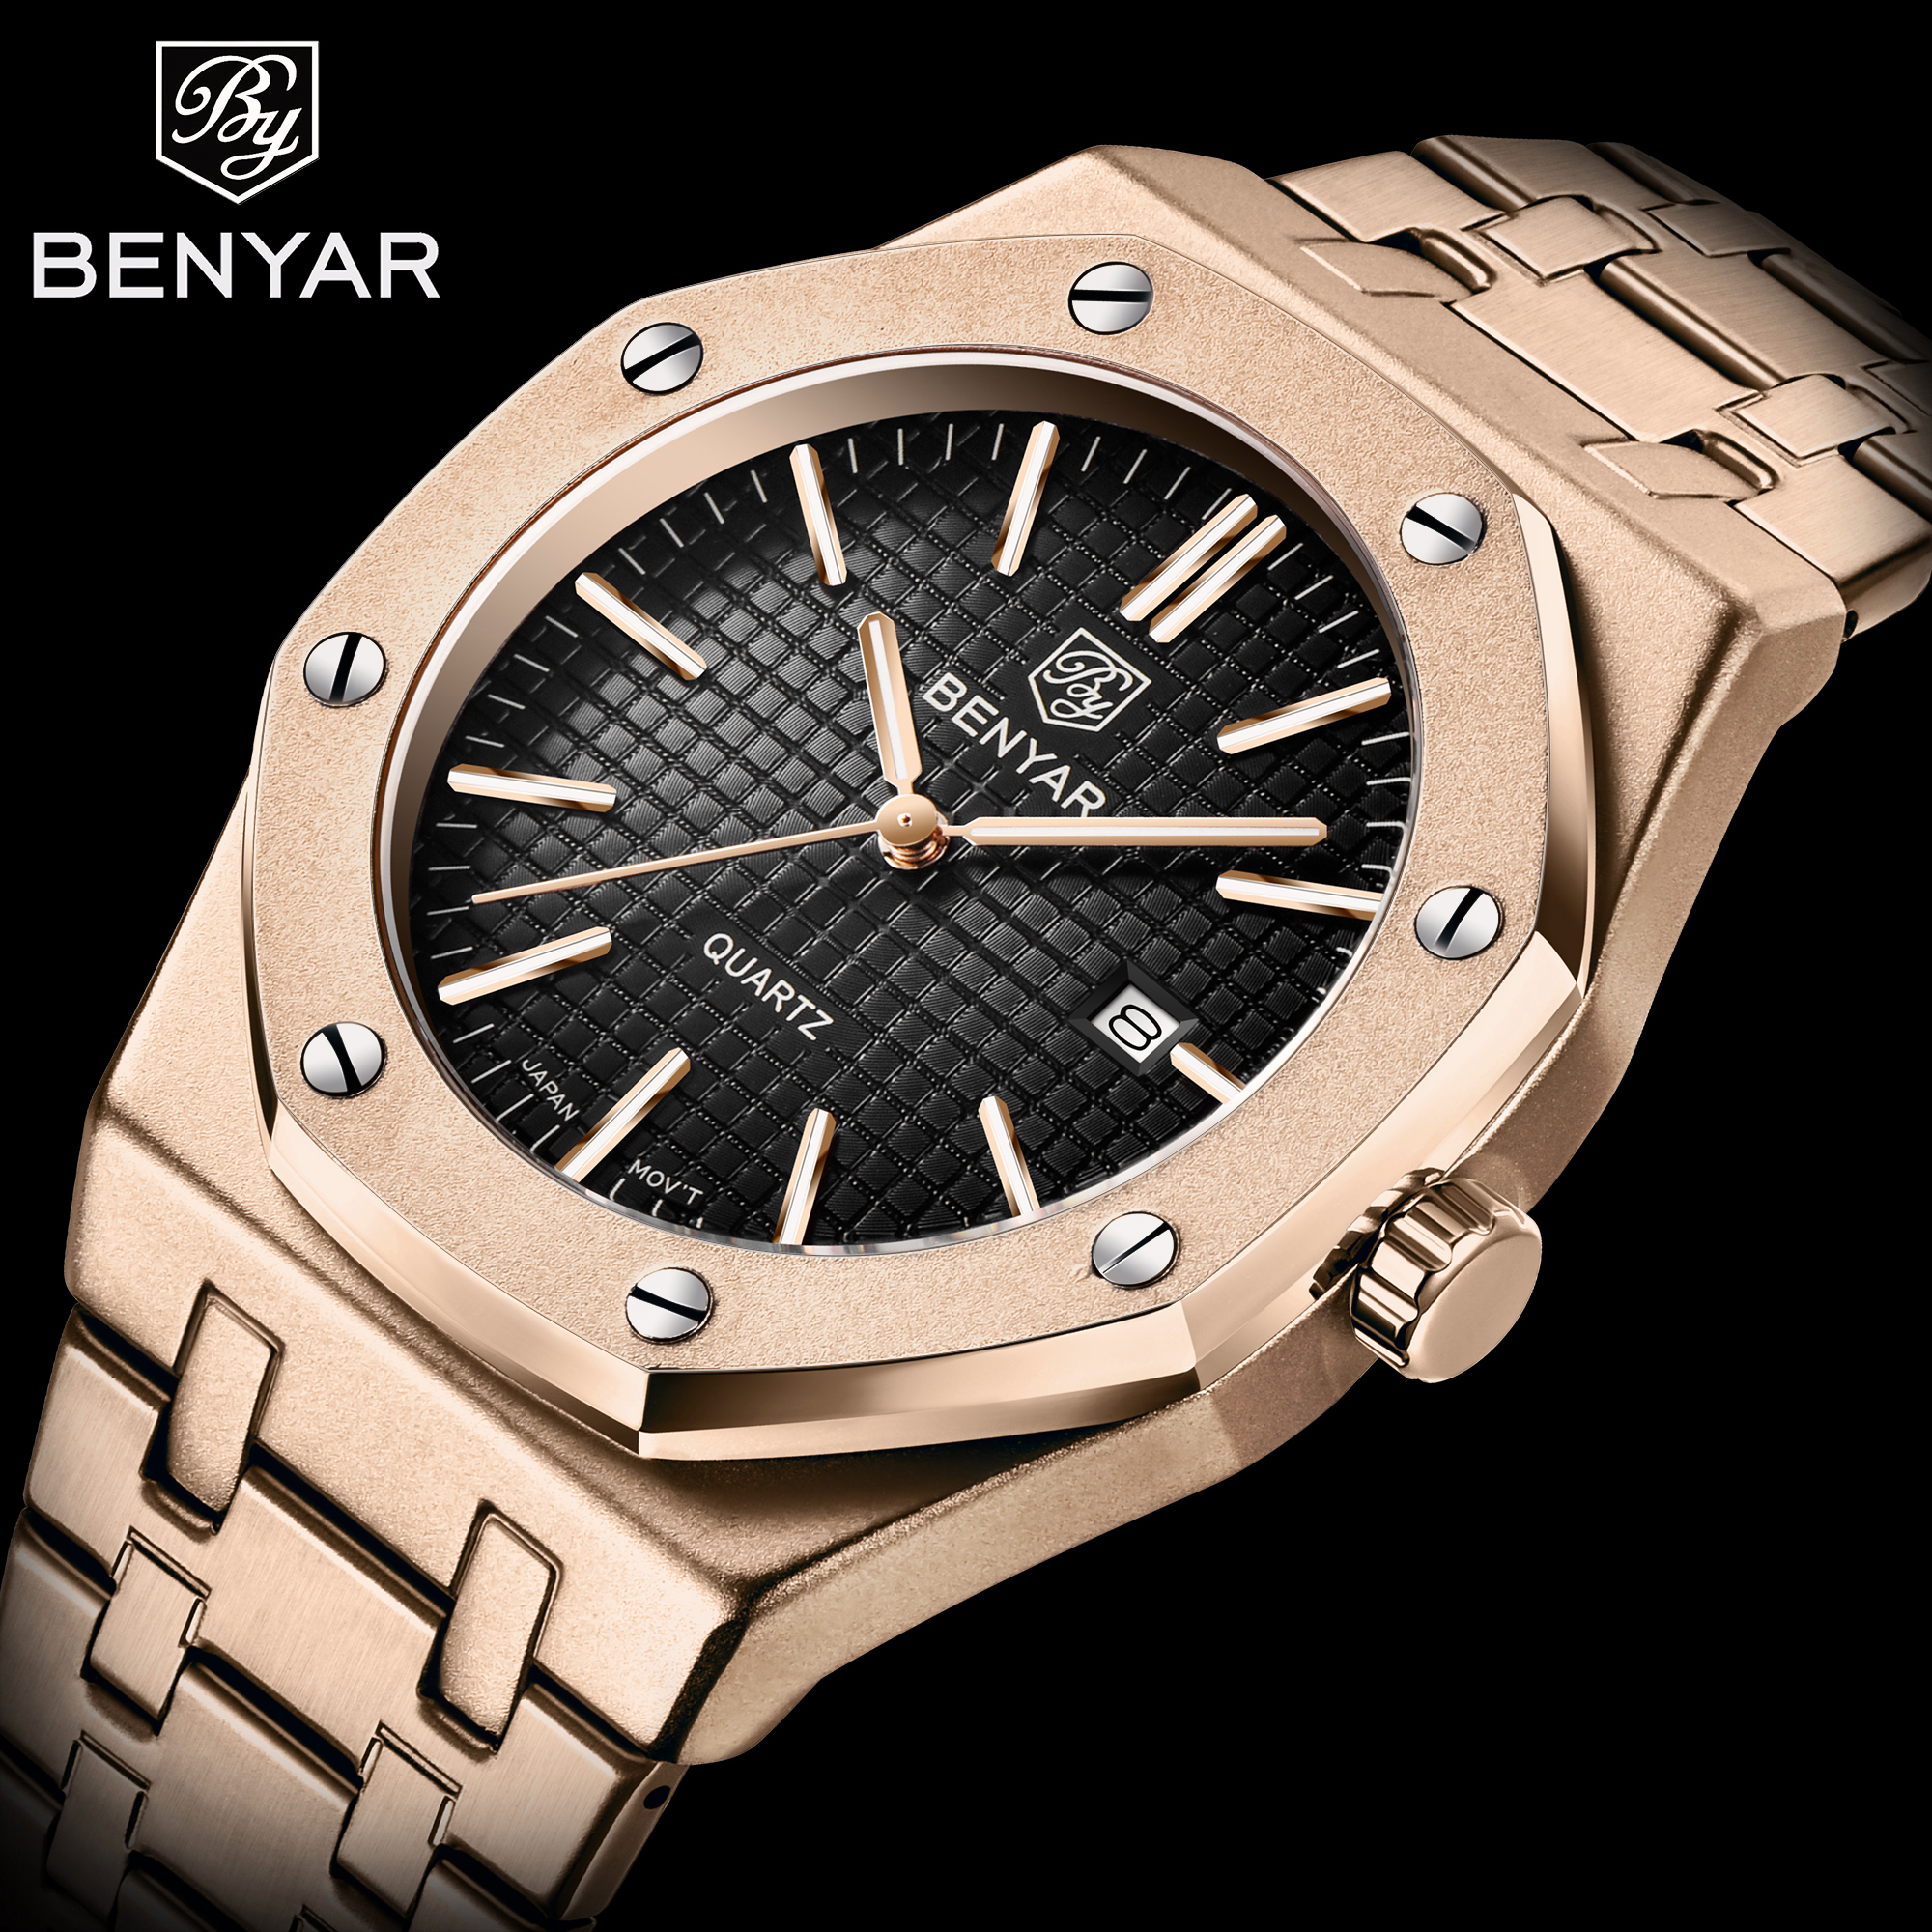 BENYAR Luxury Brand Mens Watches Business Quartz Watch Men Fashion Casual Watches Sport Waterproof Clock Man Relojes Hombre 2019